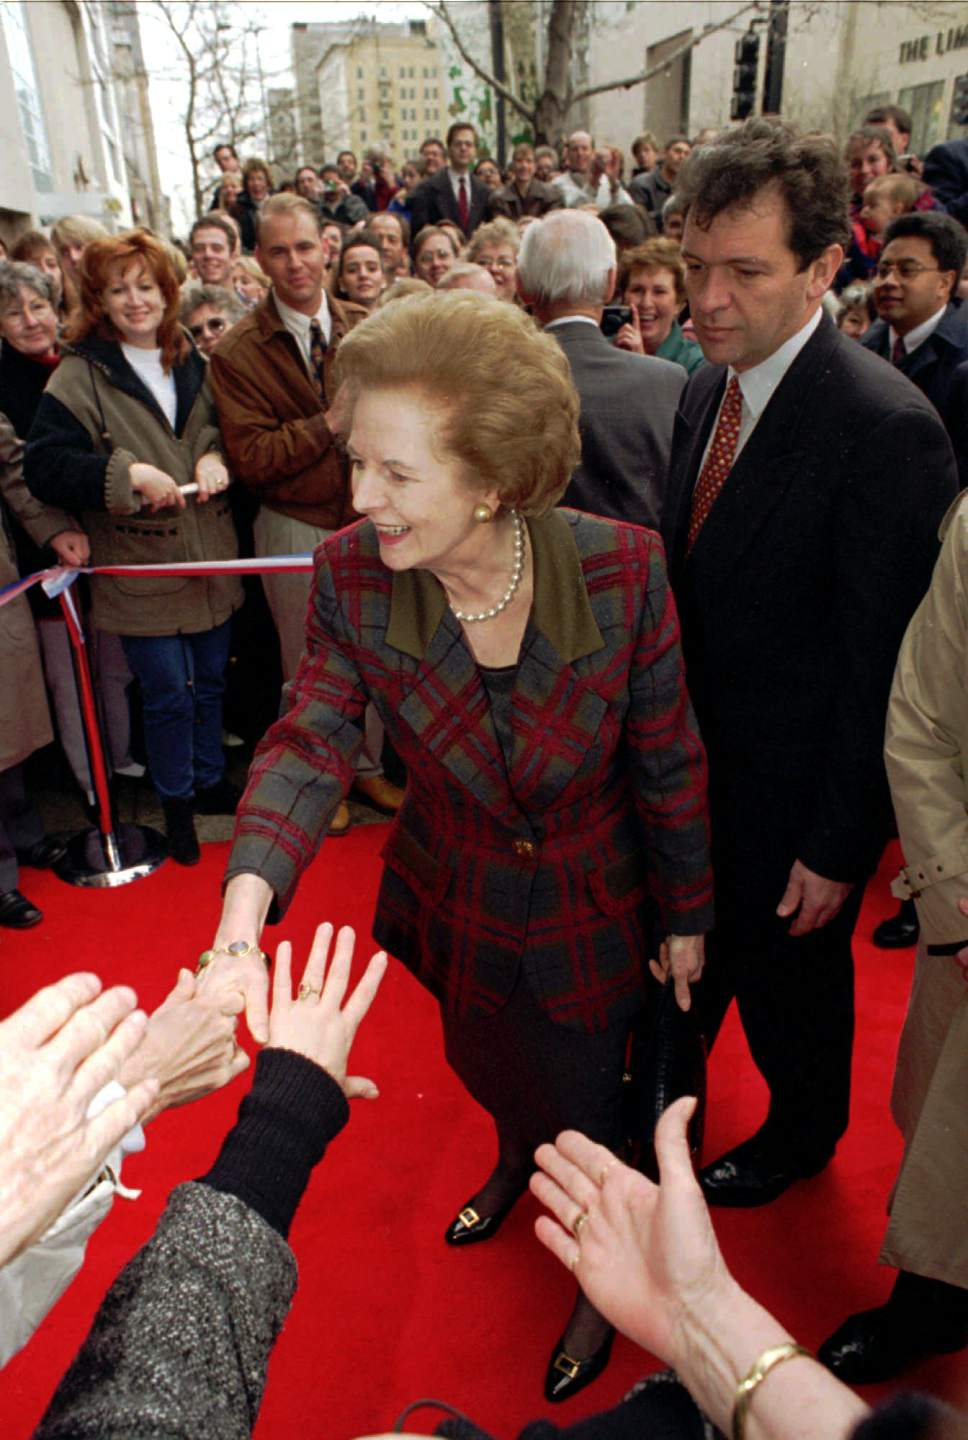 Fans reach out to touch Lady Margaret Thatcher as she arrives outside the ZCMI department store during ribbon cutting ceremony to start out the UK/Utah Festival Monday, March 4, 1996 in Salt Lake City. The former British Prime Minister is in the city for a week on a Utah/United Kingdom trade promotion. (AP Photo/Steve C. Wilson)